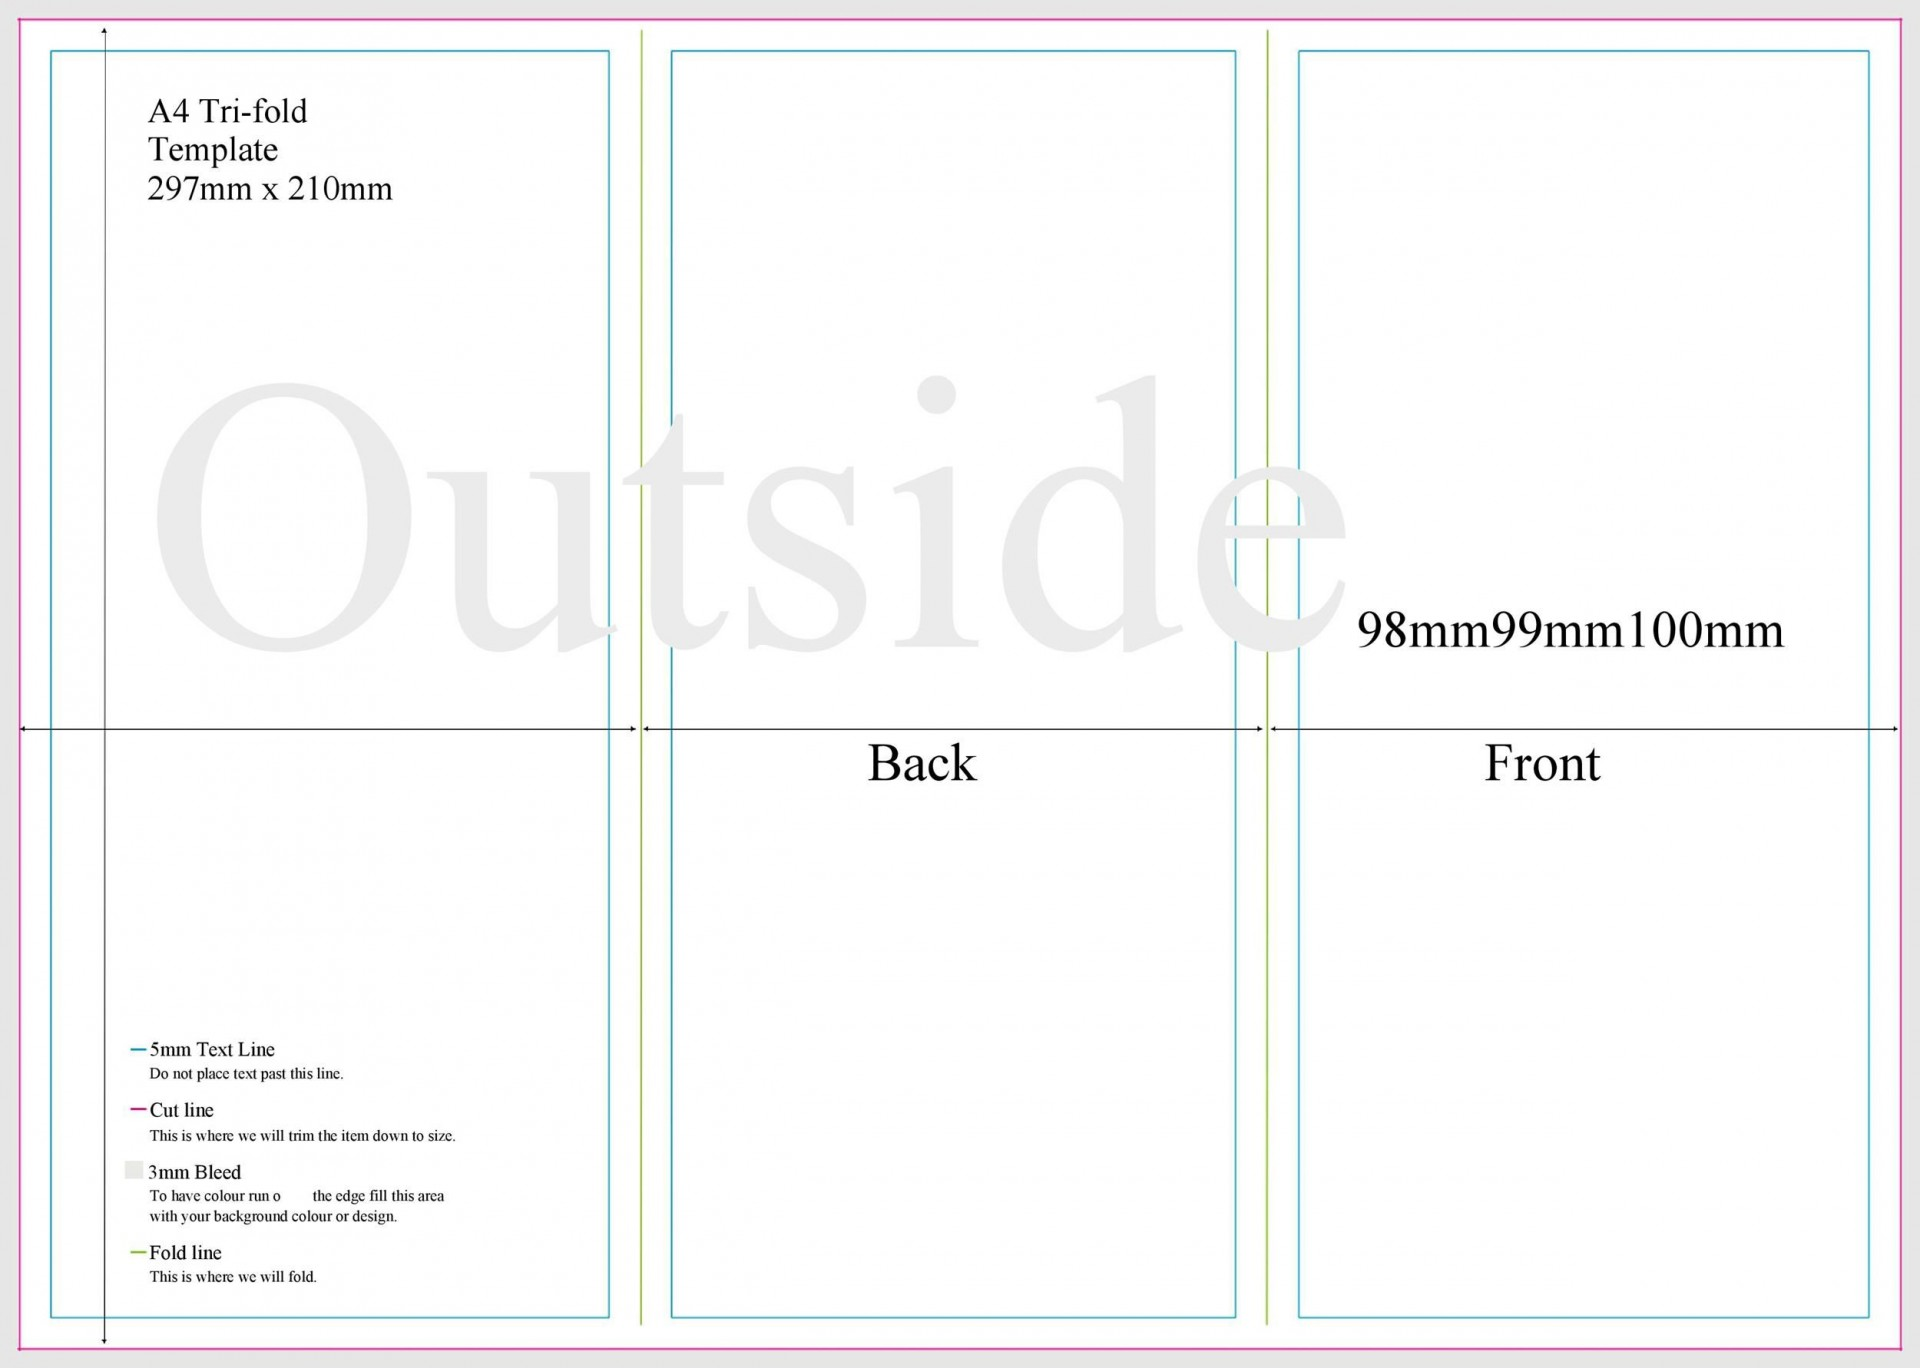 007 Awful Folding Brochure Template Google Doc High Resolution  Docs 2 Fold Half1920